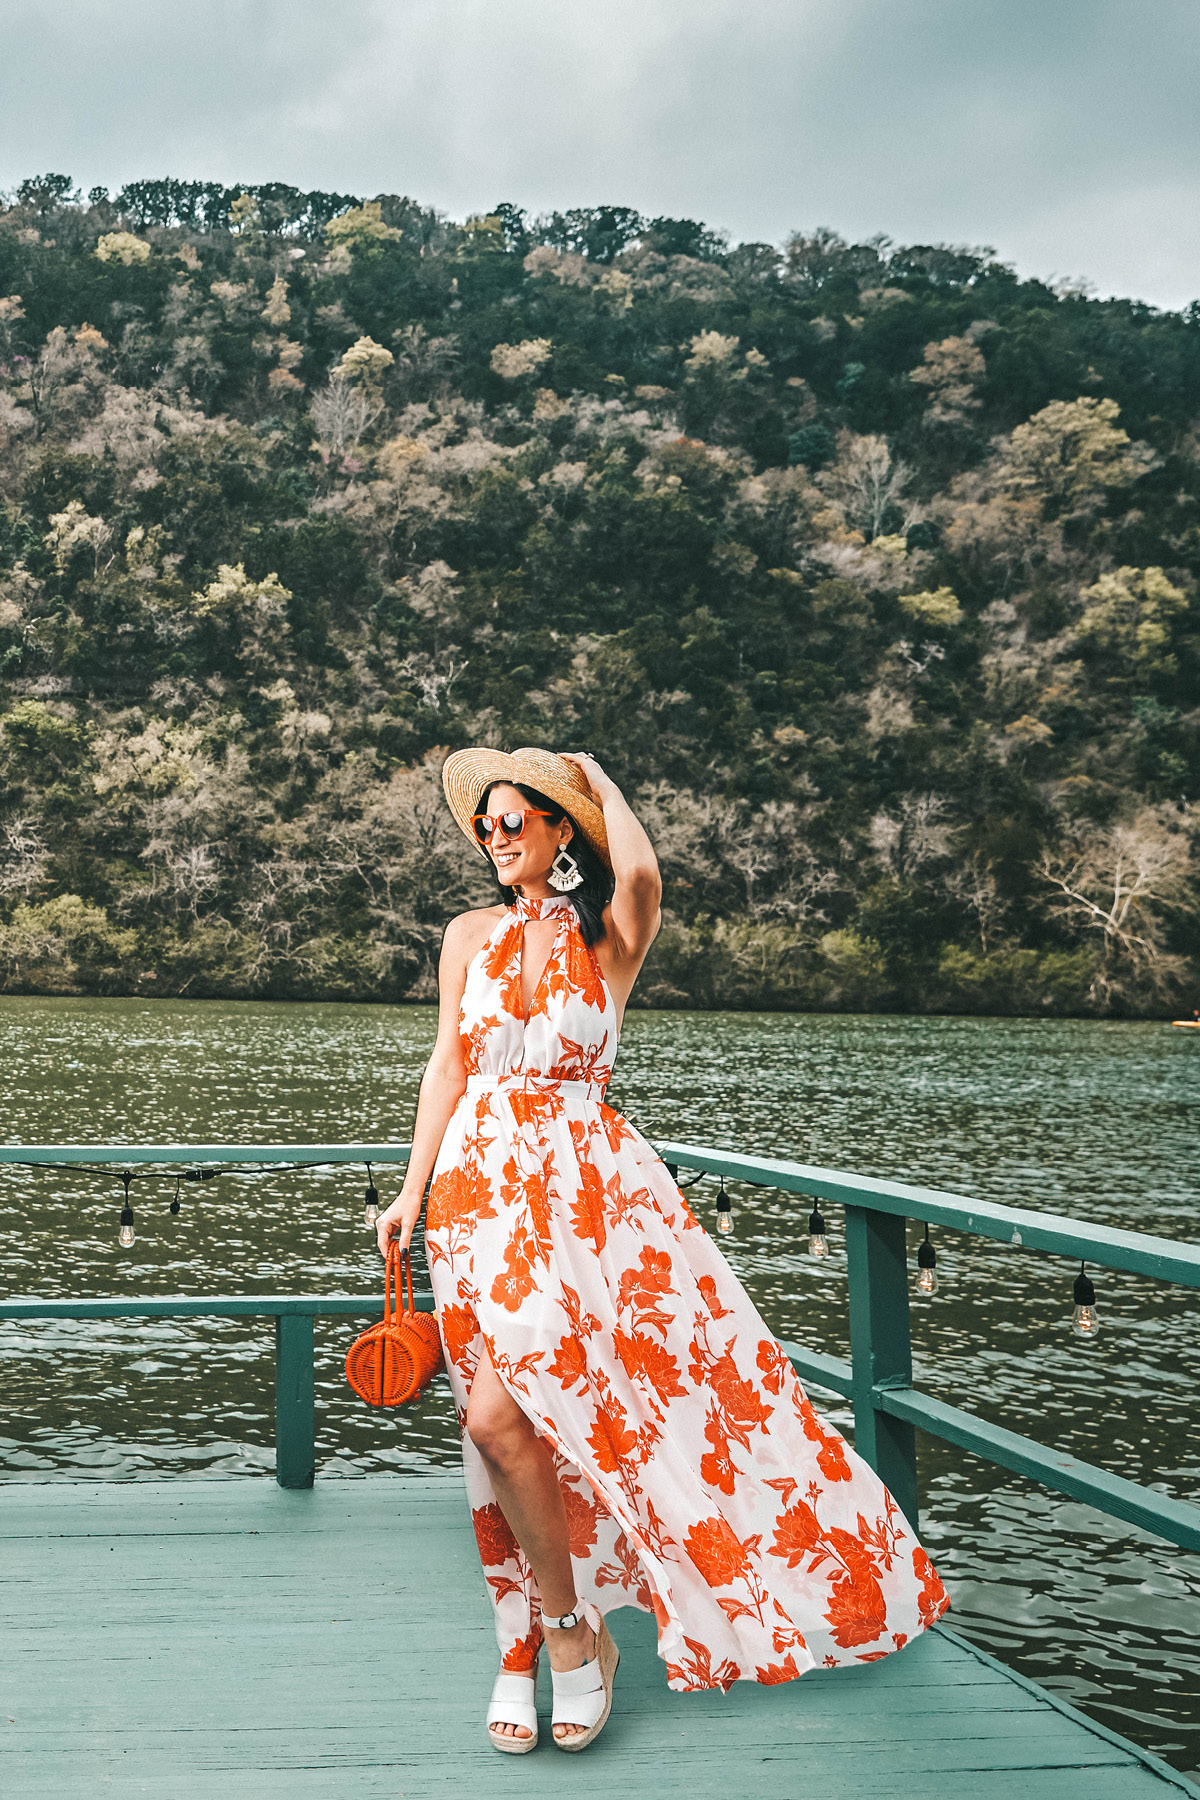 Floral Maxi Dress featured by top US fashion blog Dressed to Kill; Image of a woman wearing VICI dress, Cleobella handbag, Treasure & Bond shoes, Vitamin A hat, Baublebar earrings and Amazon sunglasses.